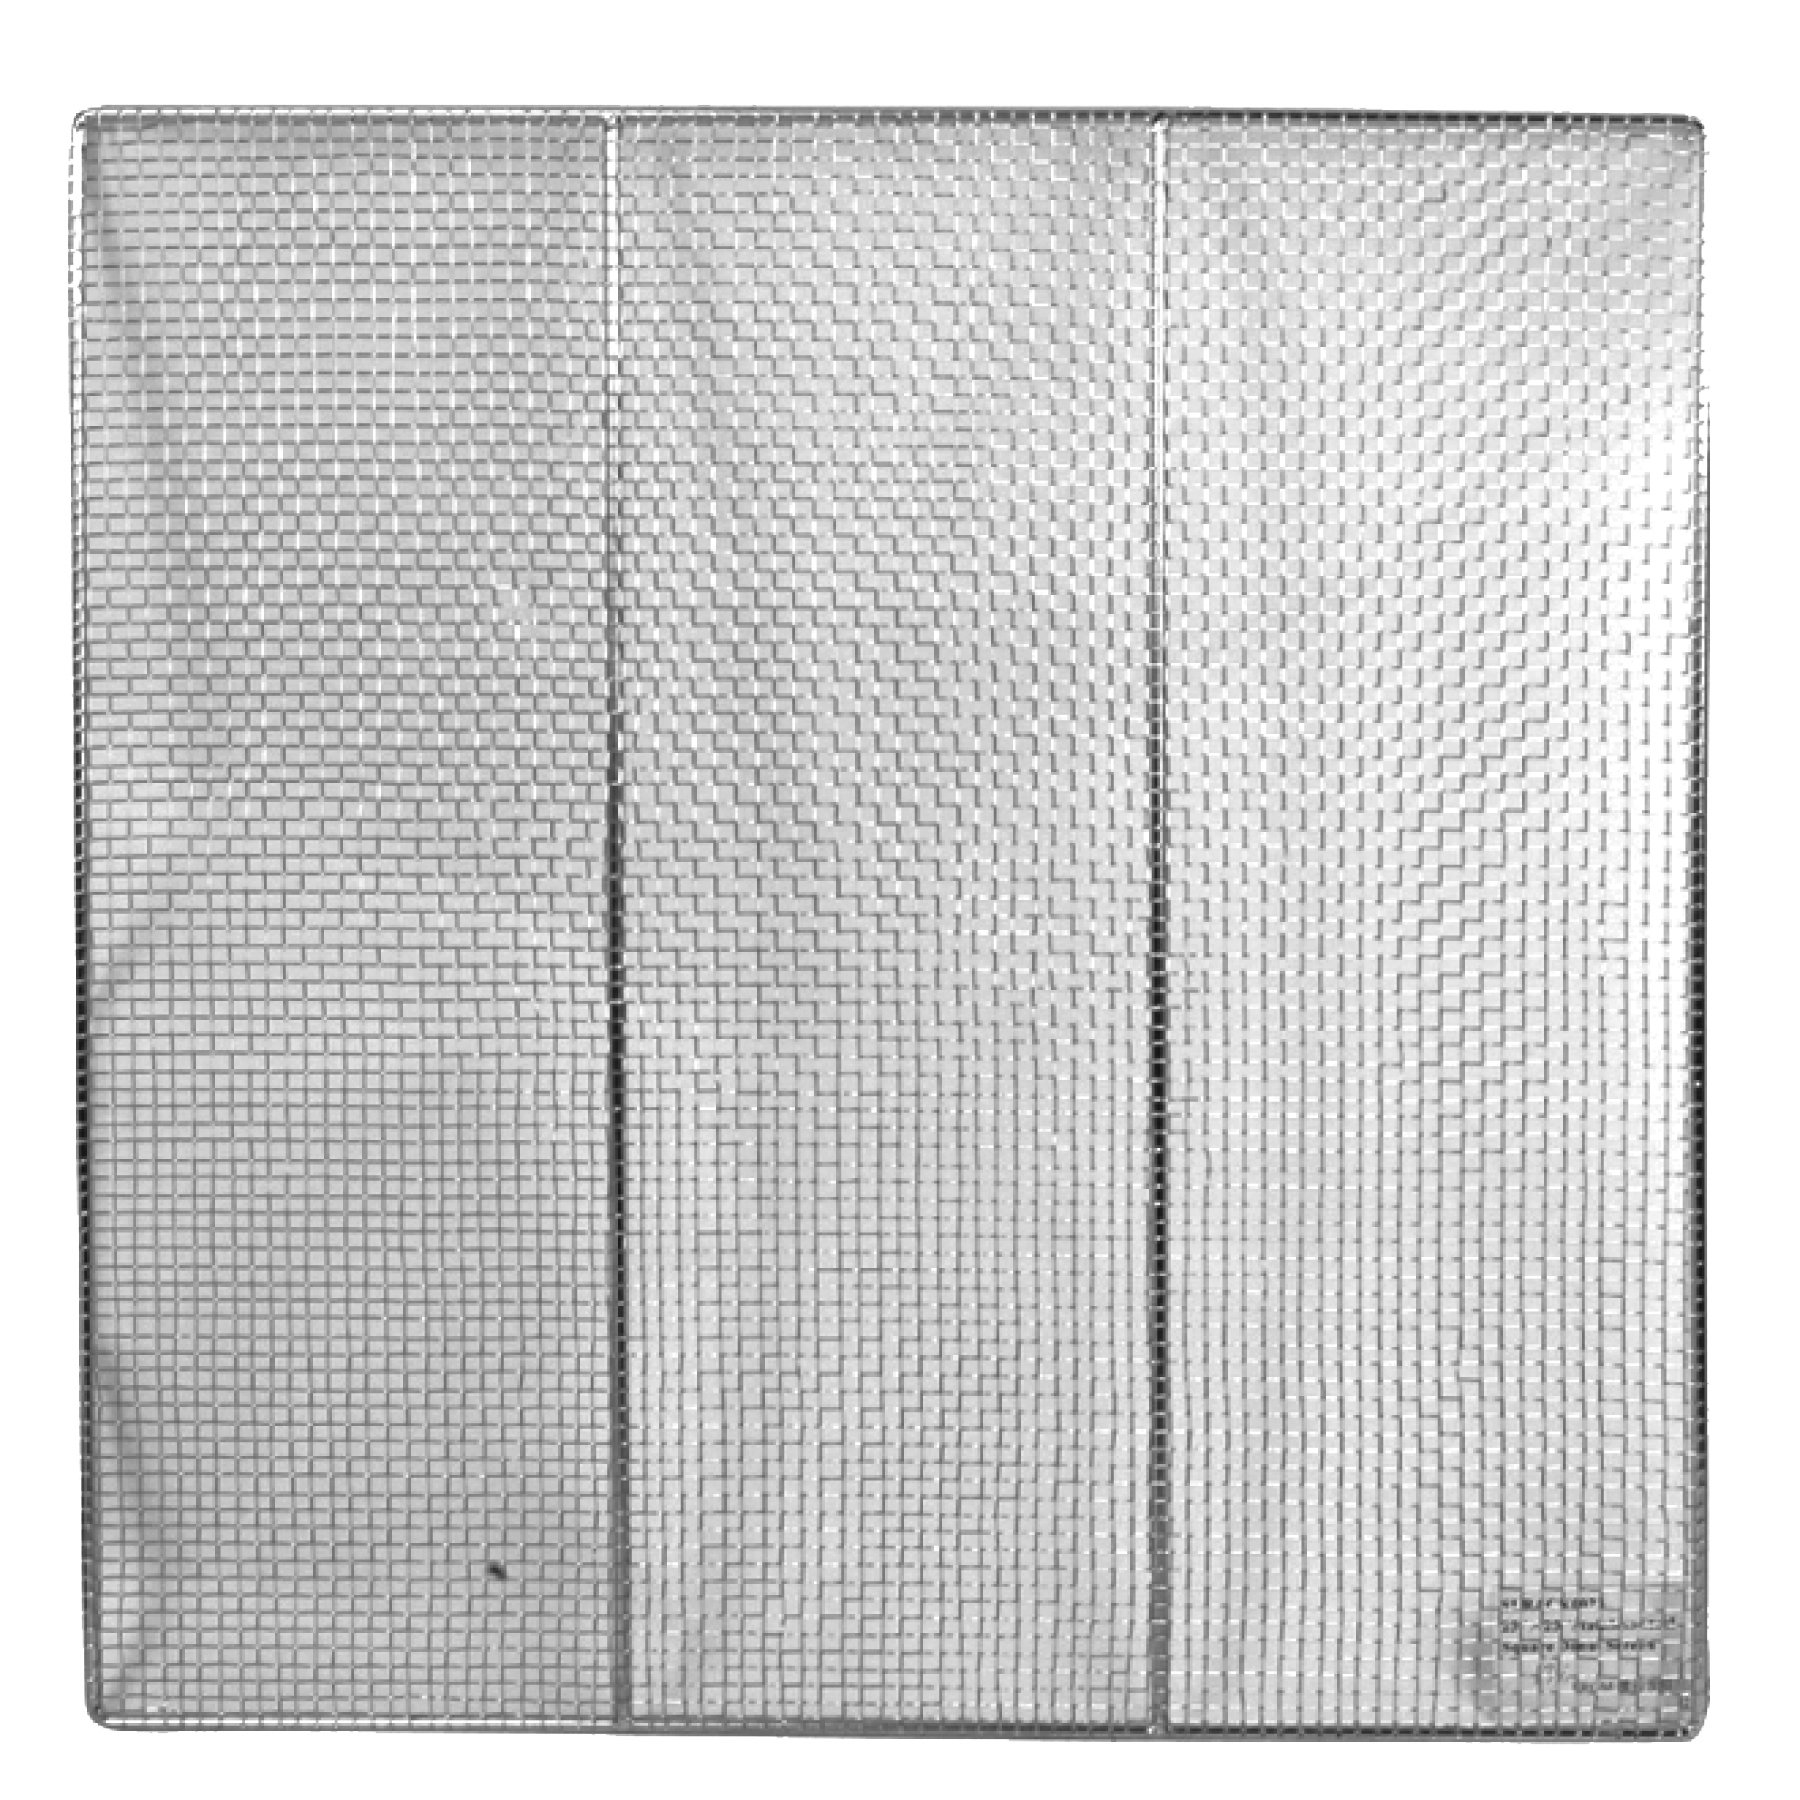 Excellante 23'' SQUARE DONUT SCREENS, STAINLESS STEEL